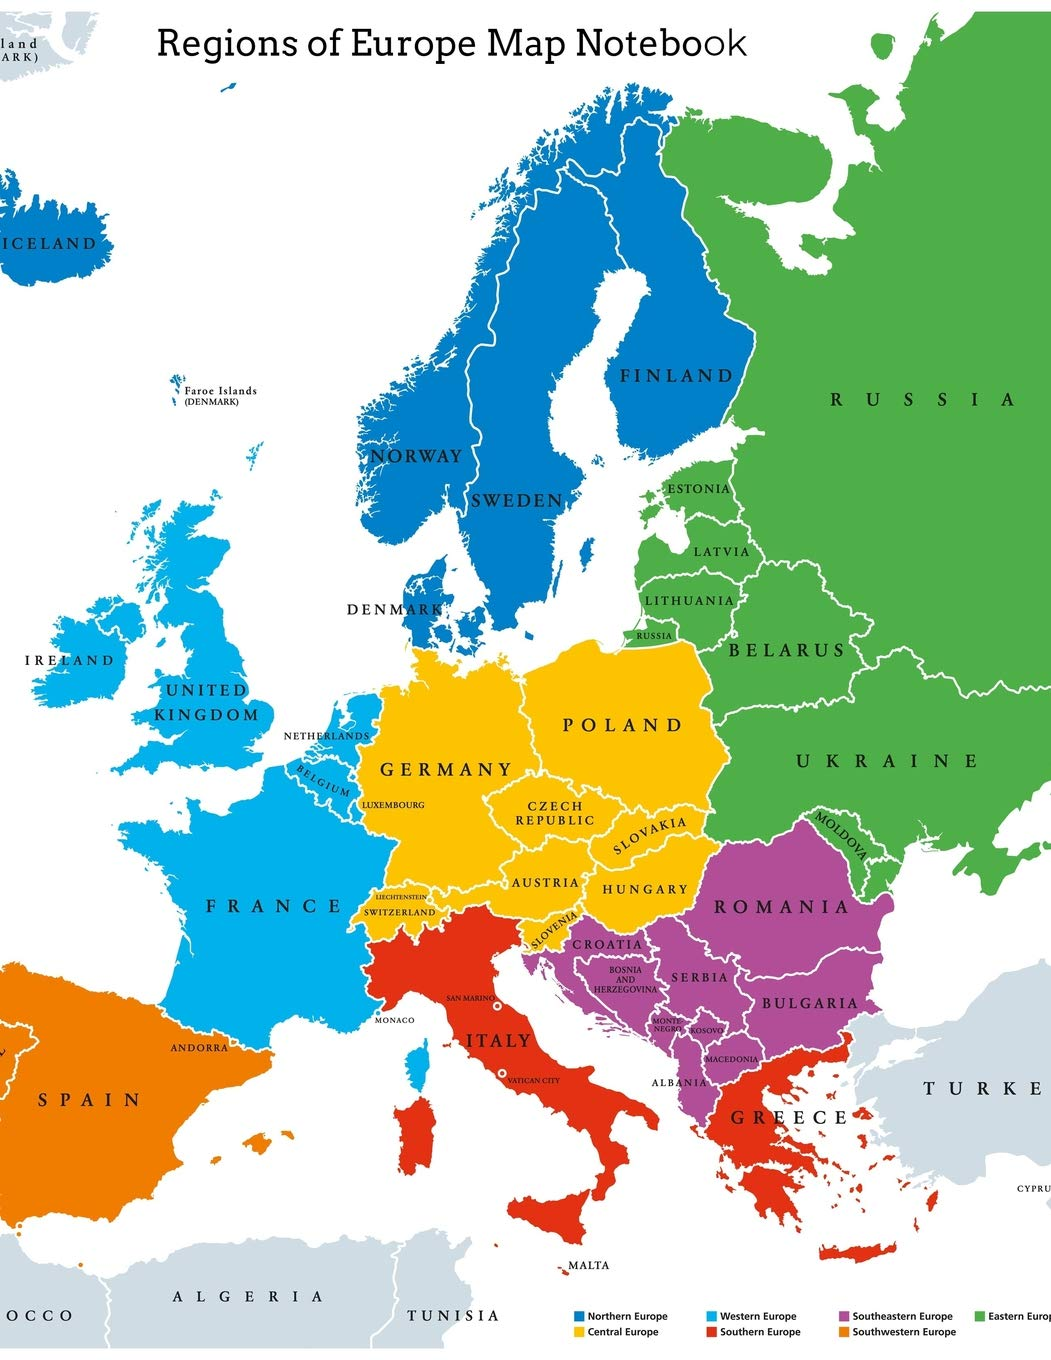 regions map of europe Regions of Europe Map Notebook: Wide Ruled Notebook, Full Size at